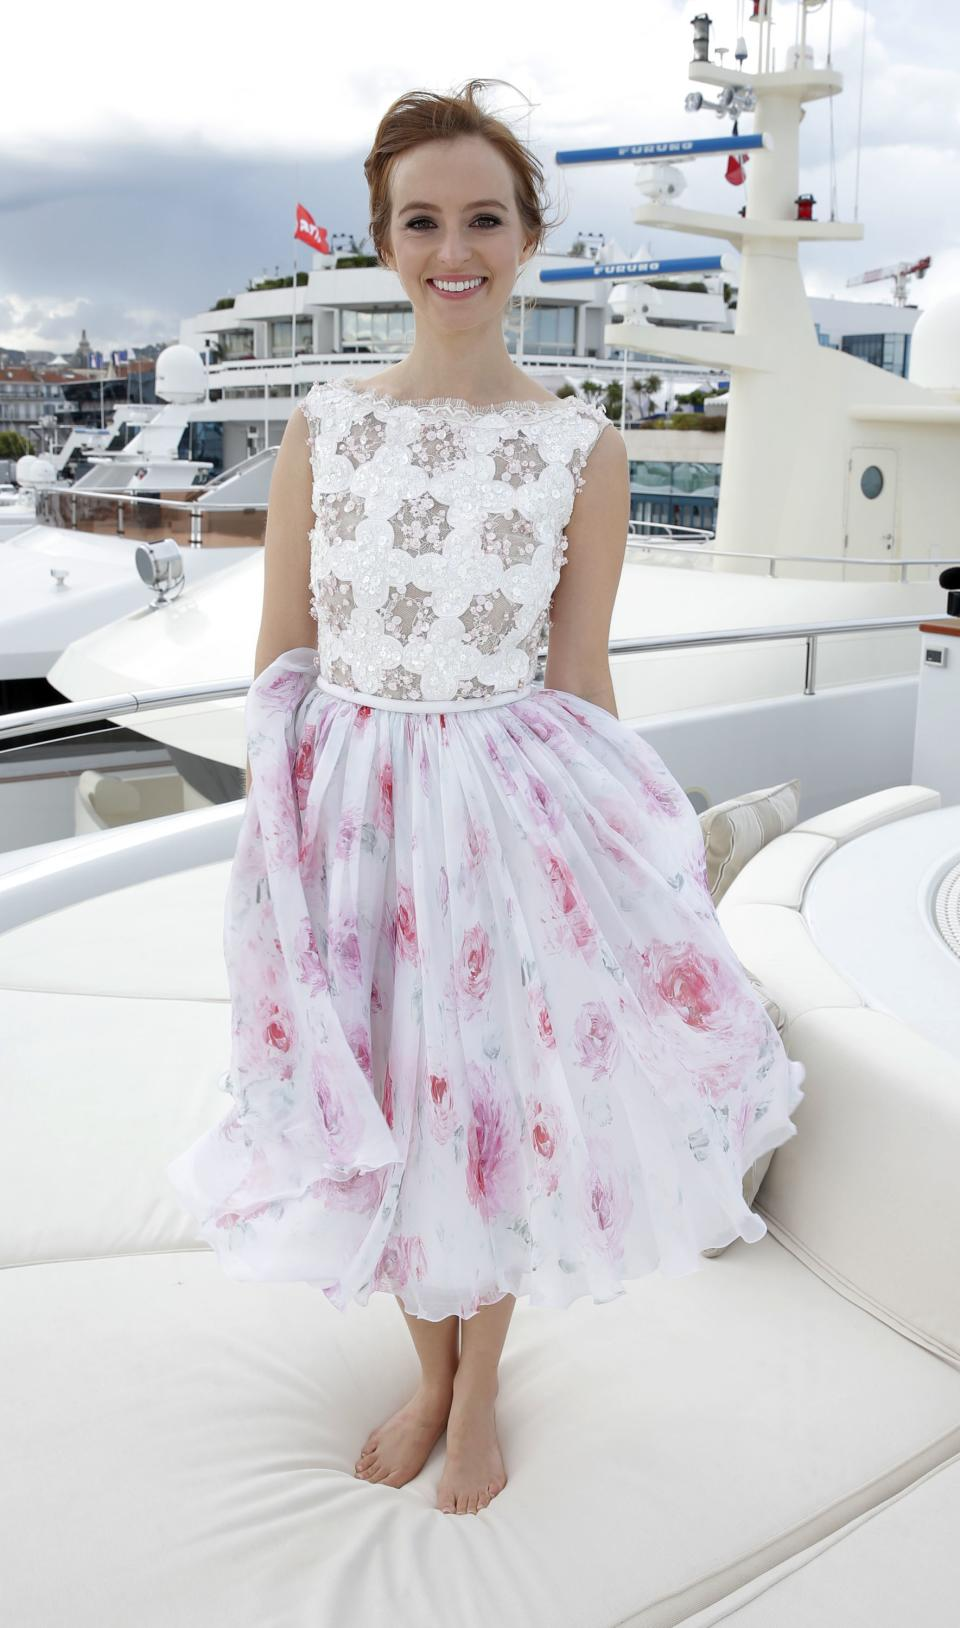 FILE - This May 19, 2013 file photo shows actress Ahna O'Reilly wearing a Georges Hobeika top and floral printed skirt embroidered with Swarovski crystals at the Art of Elysium Party during the 66th international film festival, in Cannes, southern France. (Photo by Todd Williamson/Invision/AP, file)